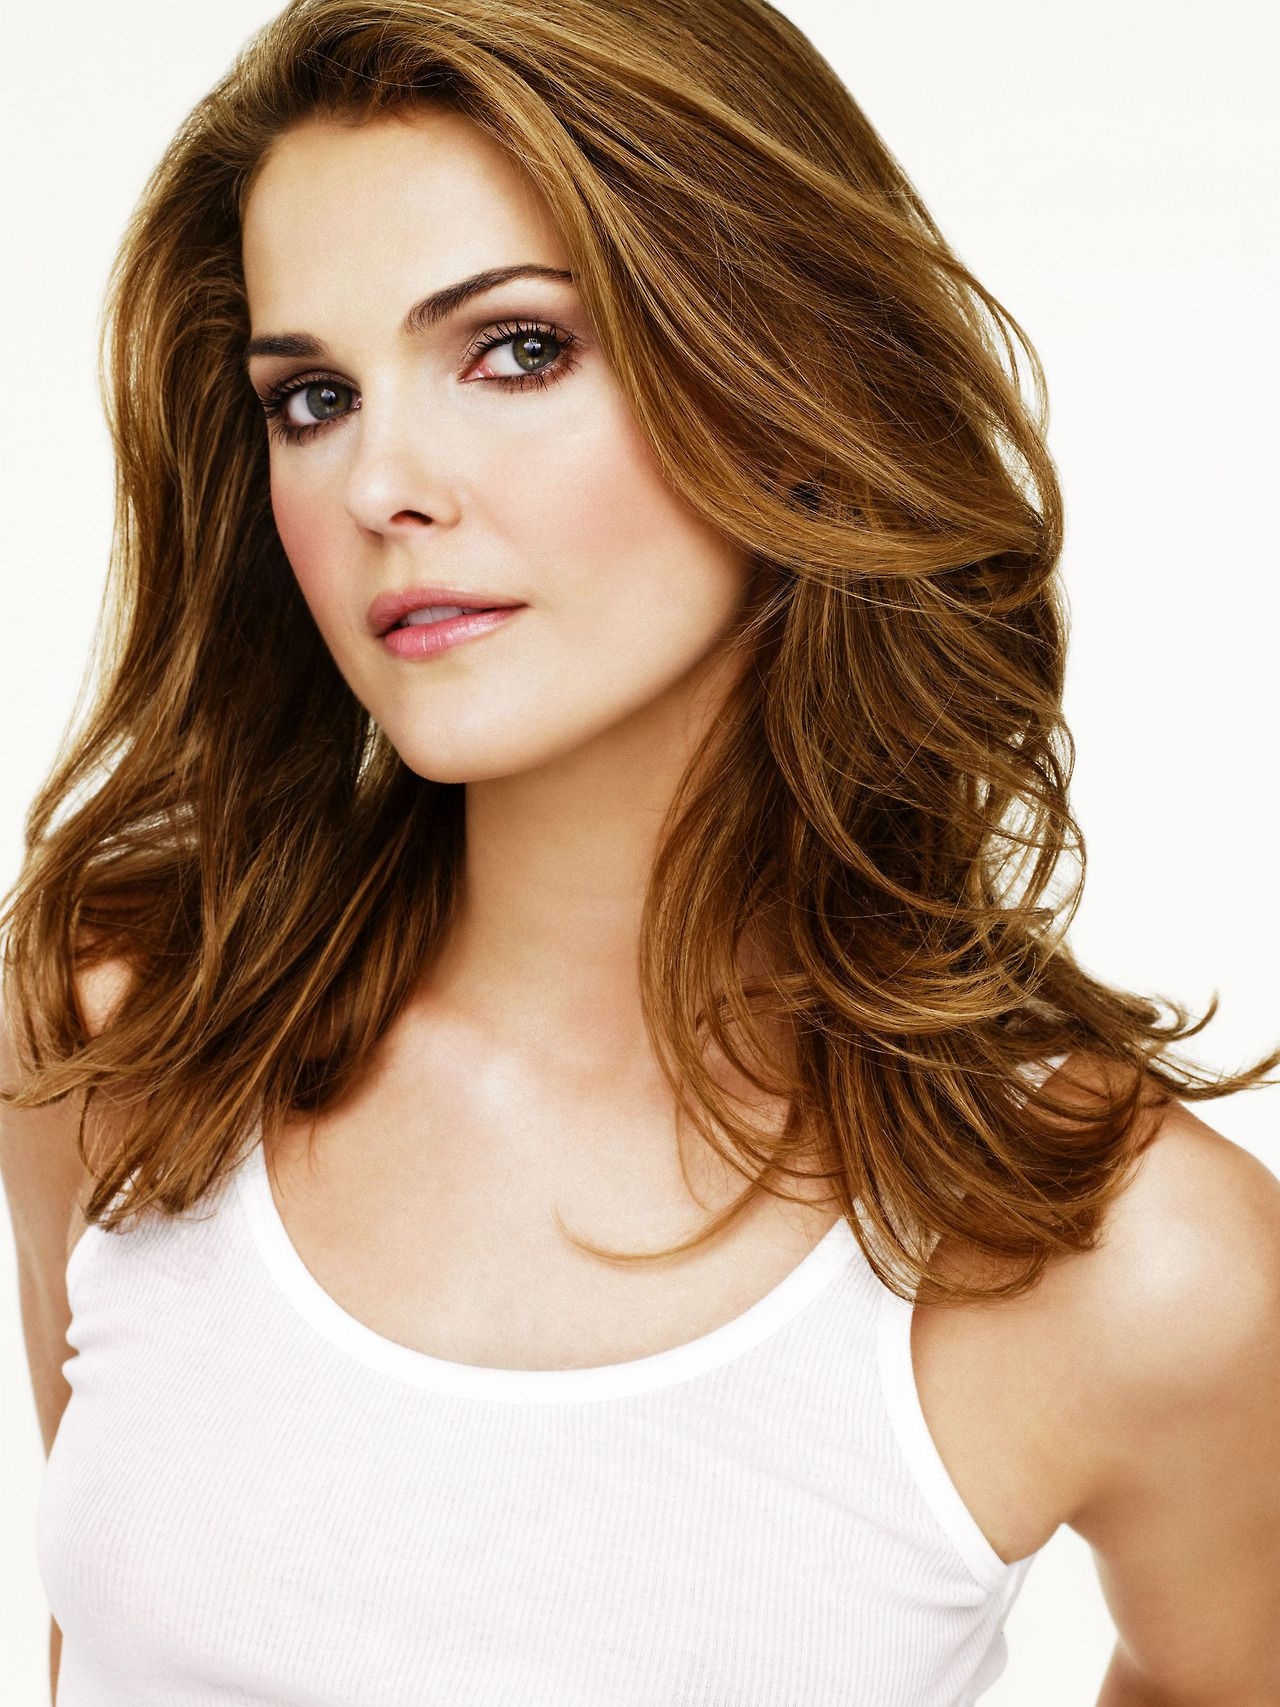 Keri Russell Photoshoot For Gq Magazine By Andrew Eccles